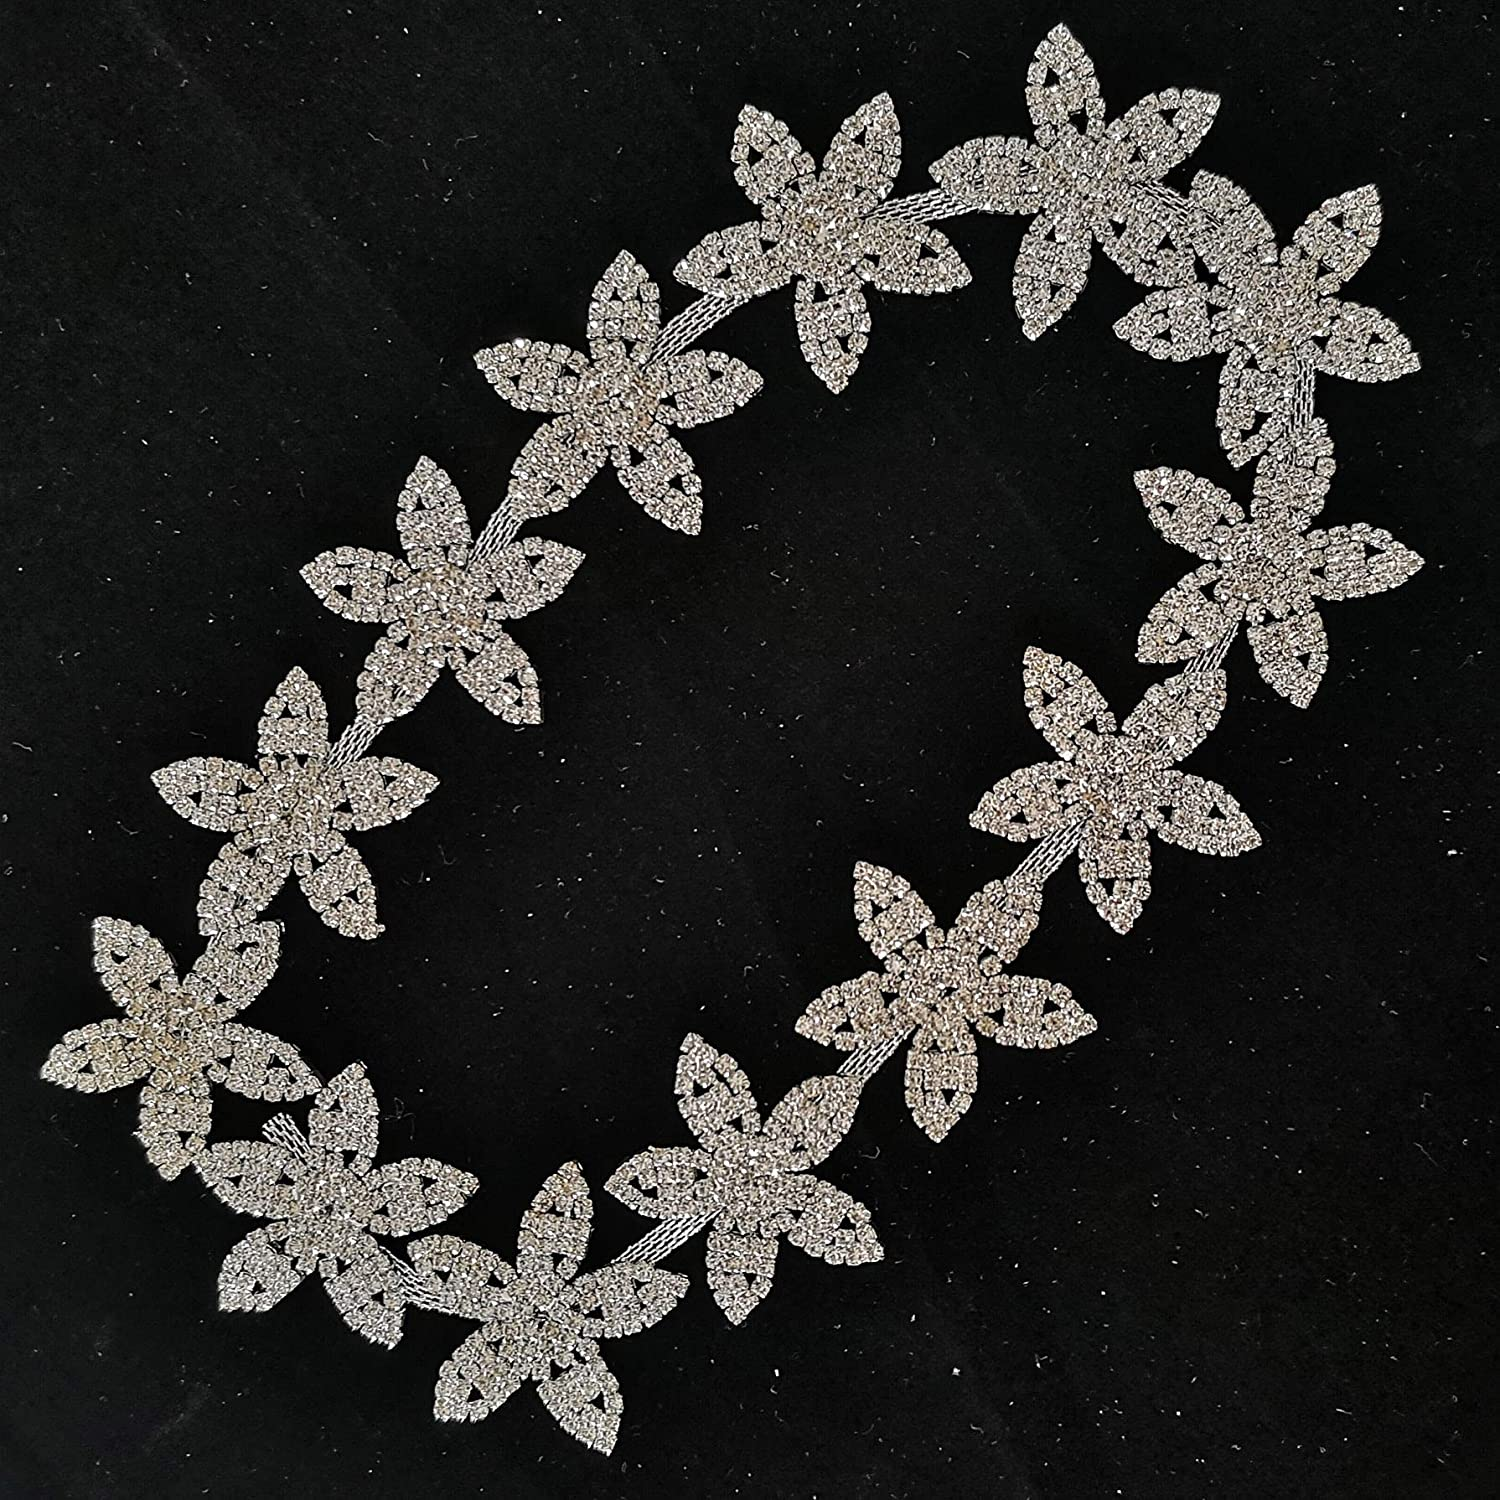 DIY Seattle Mall Sewing blinding Rhinestone Chain Bridal for Flower Quality inspection Applique